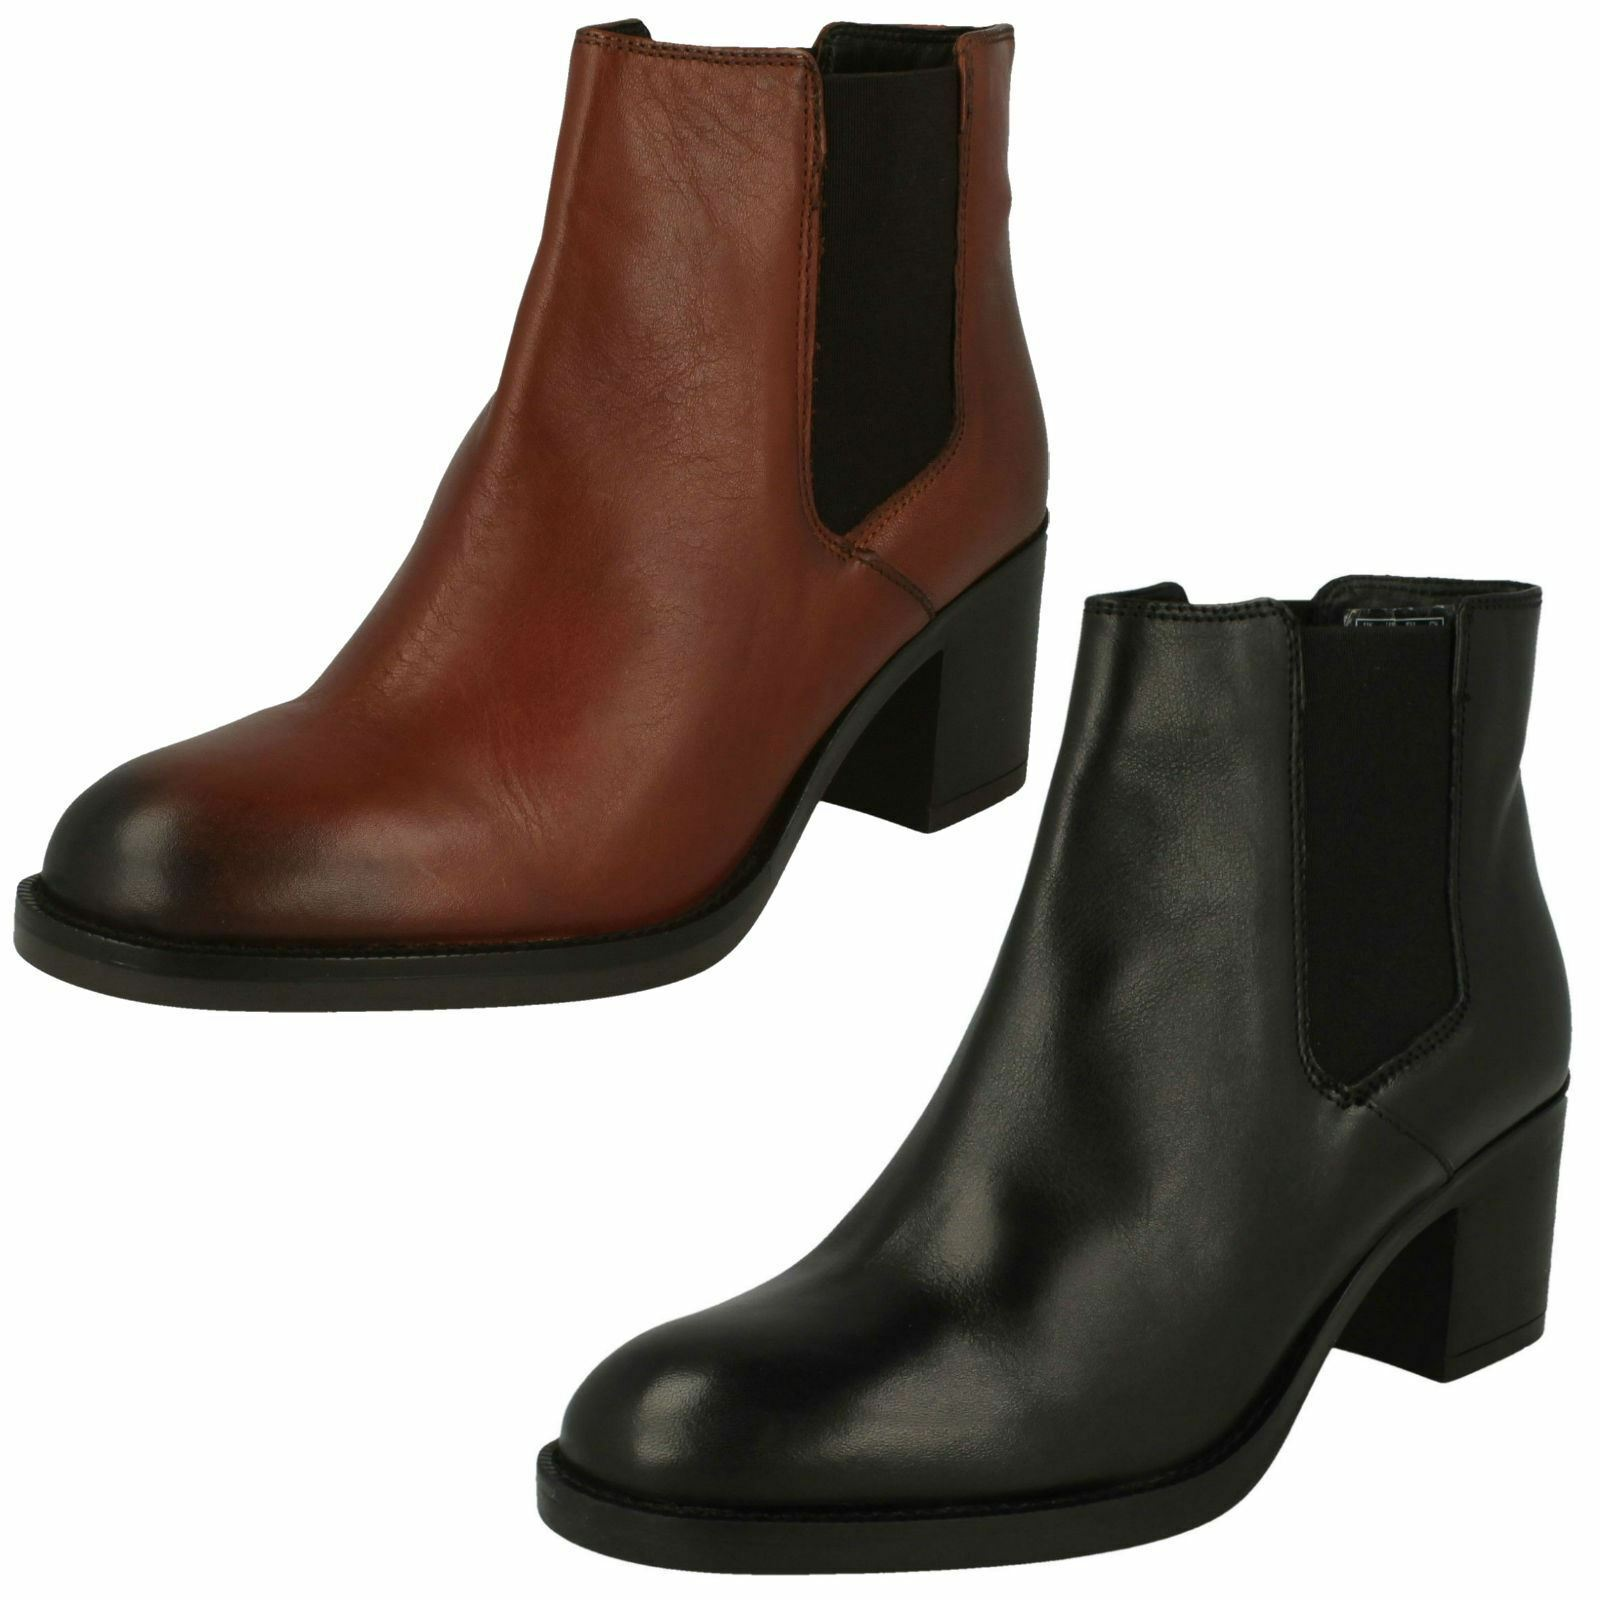 Ladies Clarks Ankle Boots - Mascarpone Bay